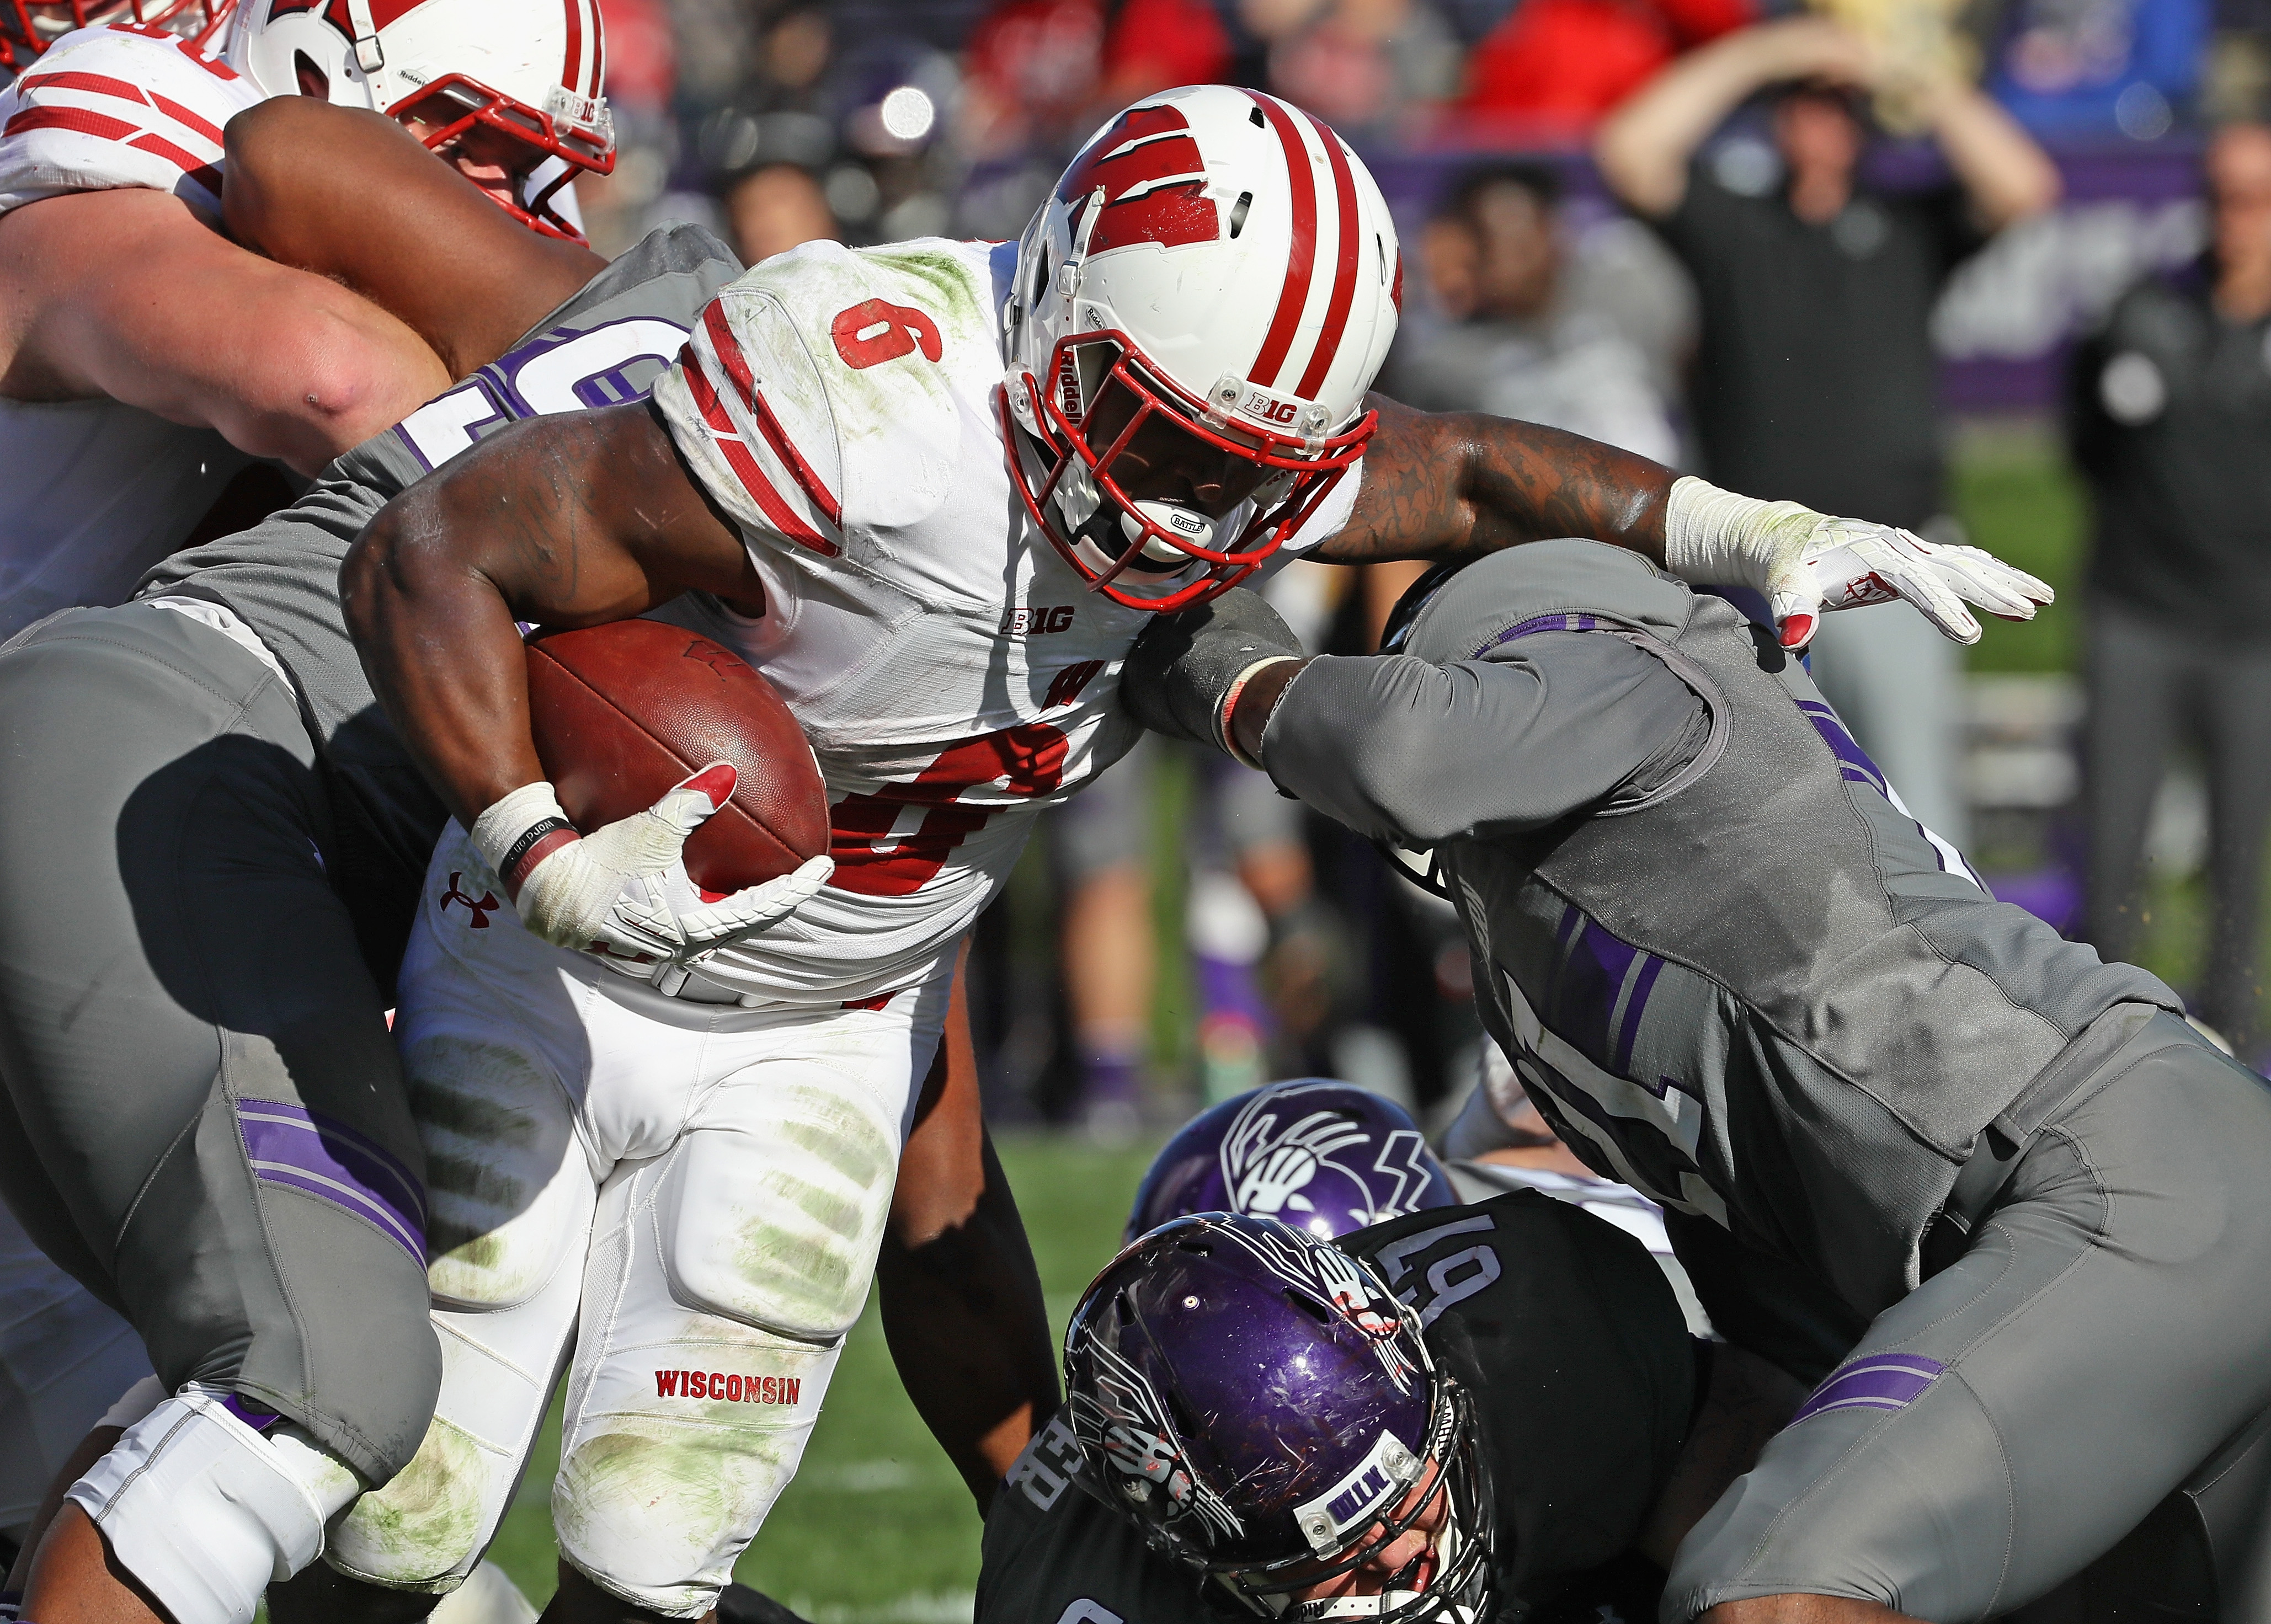 Badgers Ground Northwestern, Keep West Division Title Hopes Alive